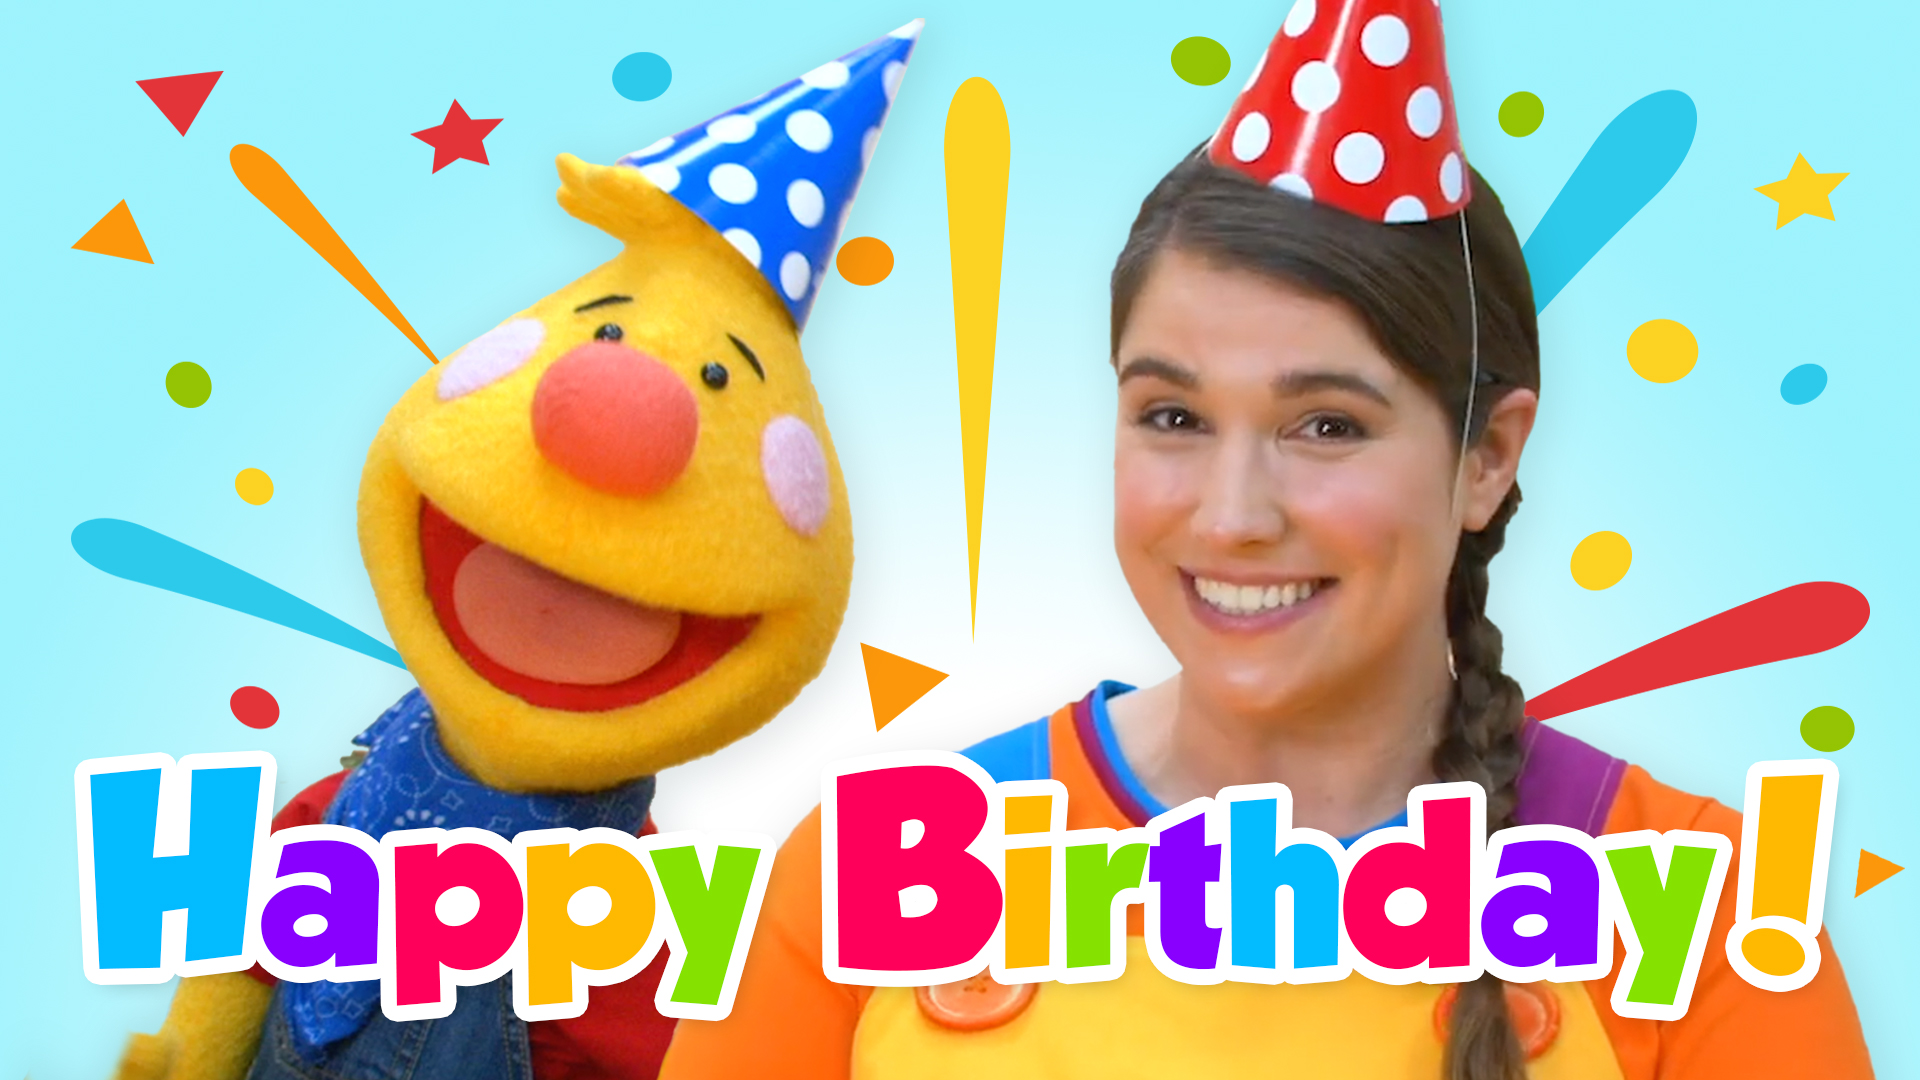 Did You Know Sesame Street Is Celebrating Its 50th Birthday This Year At Super Simple Weve Always Been Inspired By The Passion Creativity